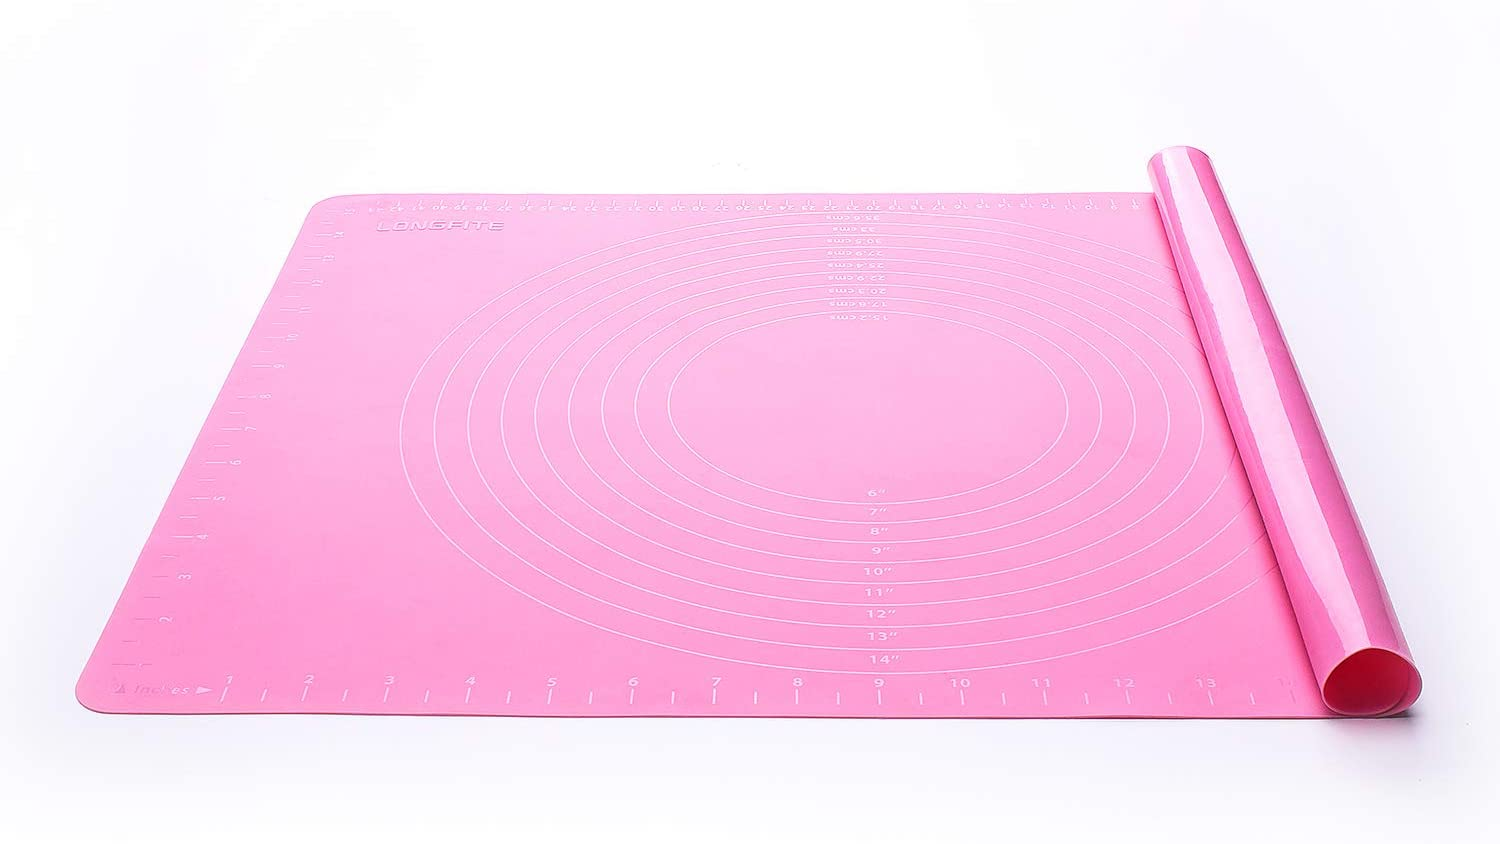 Silicone Baking Mat for Pastry Rolling Dough Mats Large Nonstick and Nonslip with Measurements,Dining Table Placemat 20'' by 16'',Pink